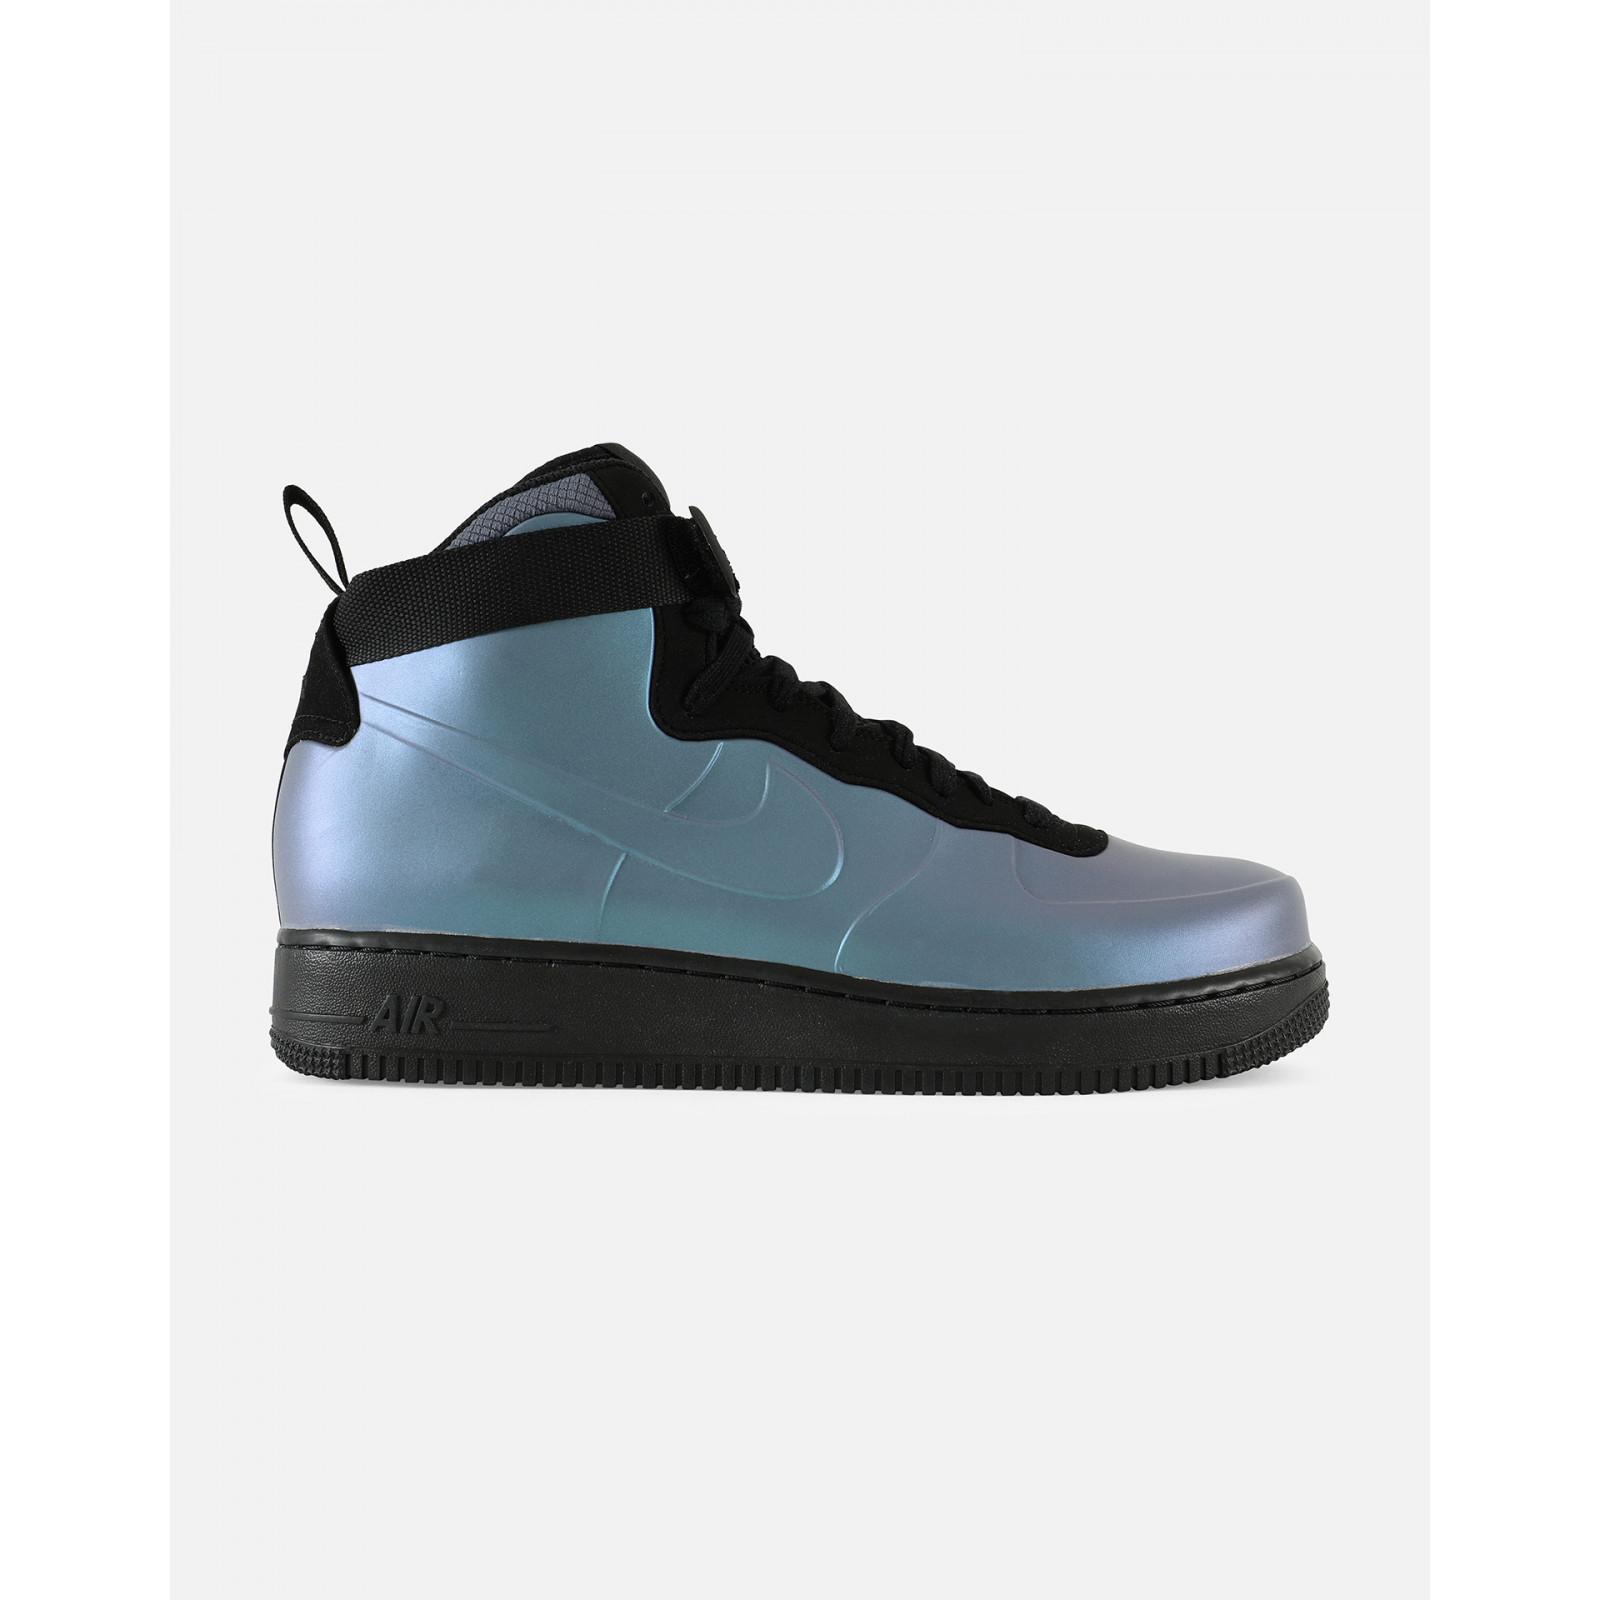 1600x1600 Nike Air Force 1 Foamposite Cup